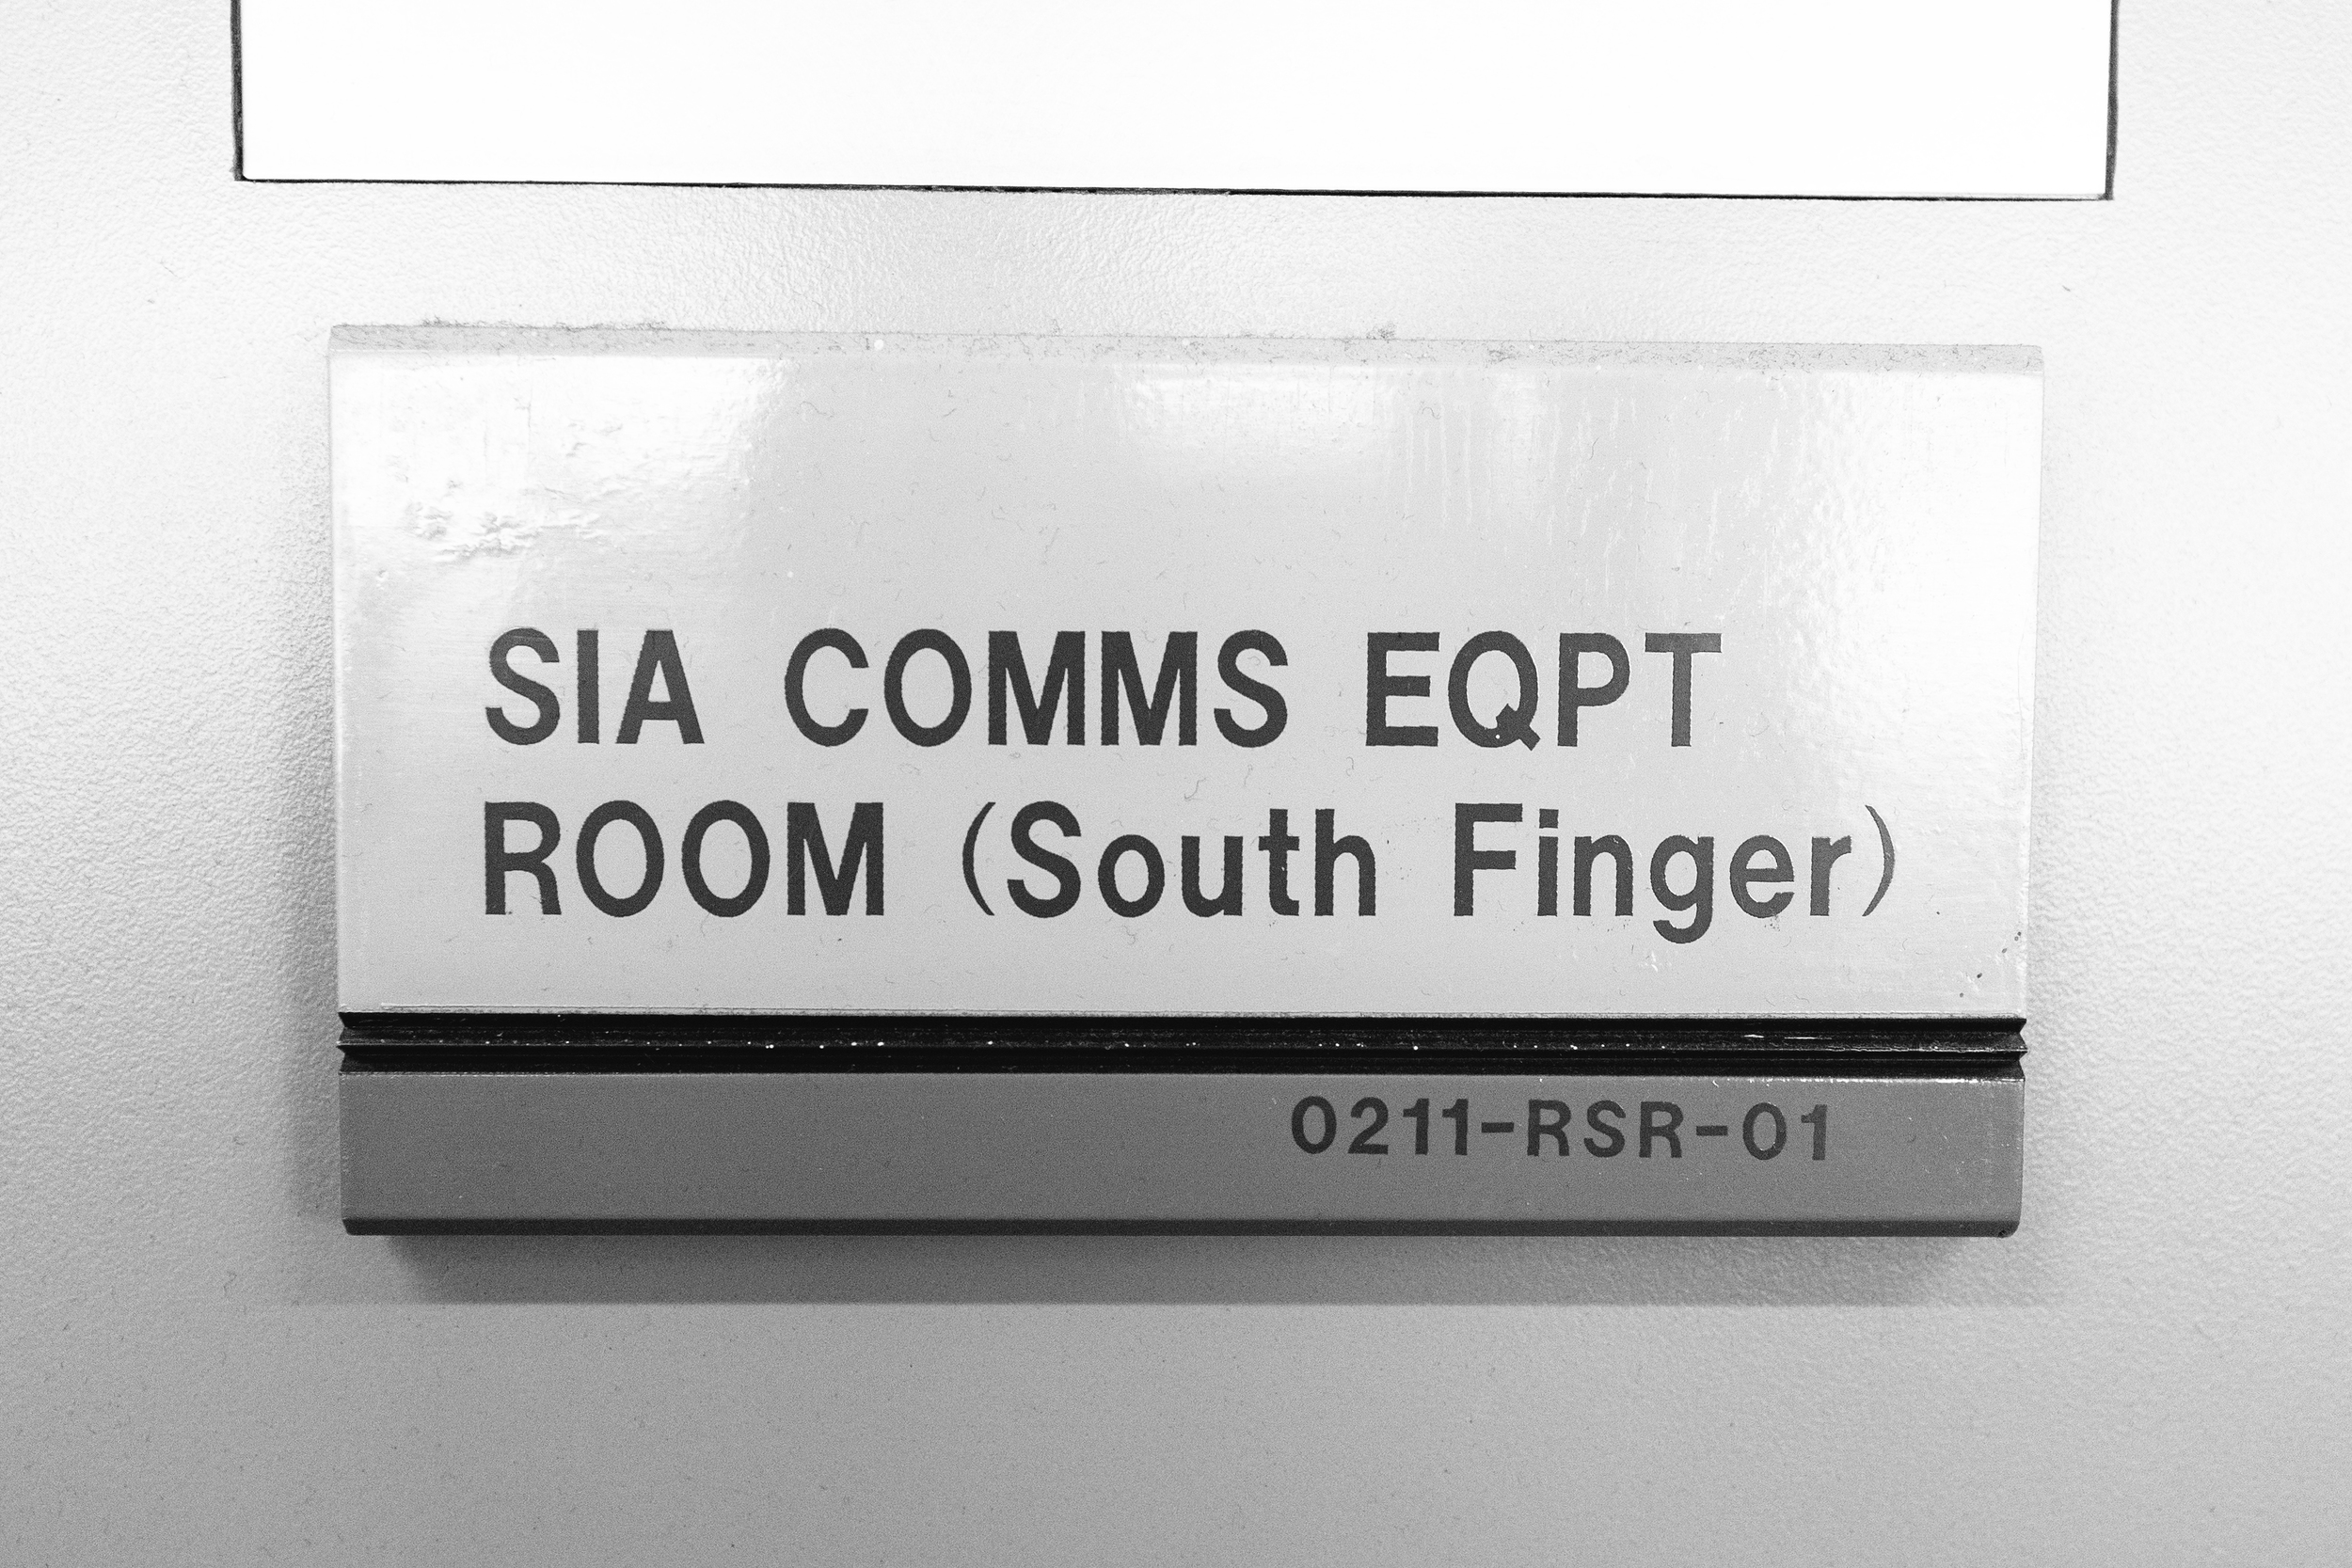 SIA COMMS EQPT ROOM (South Finger).jpg